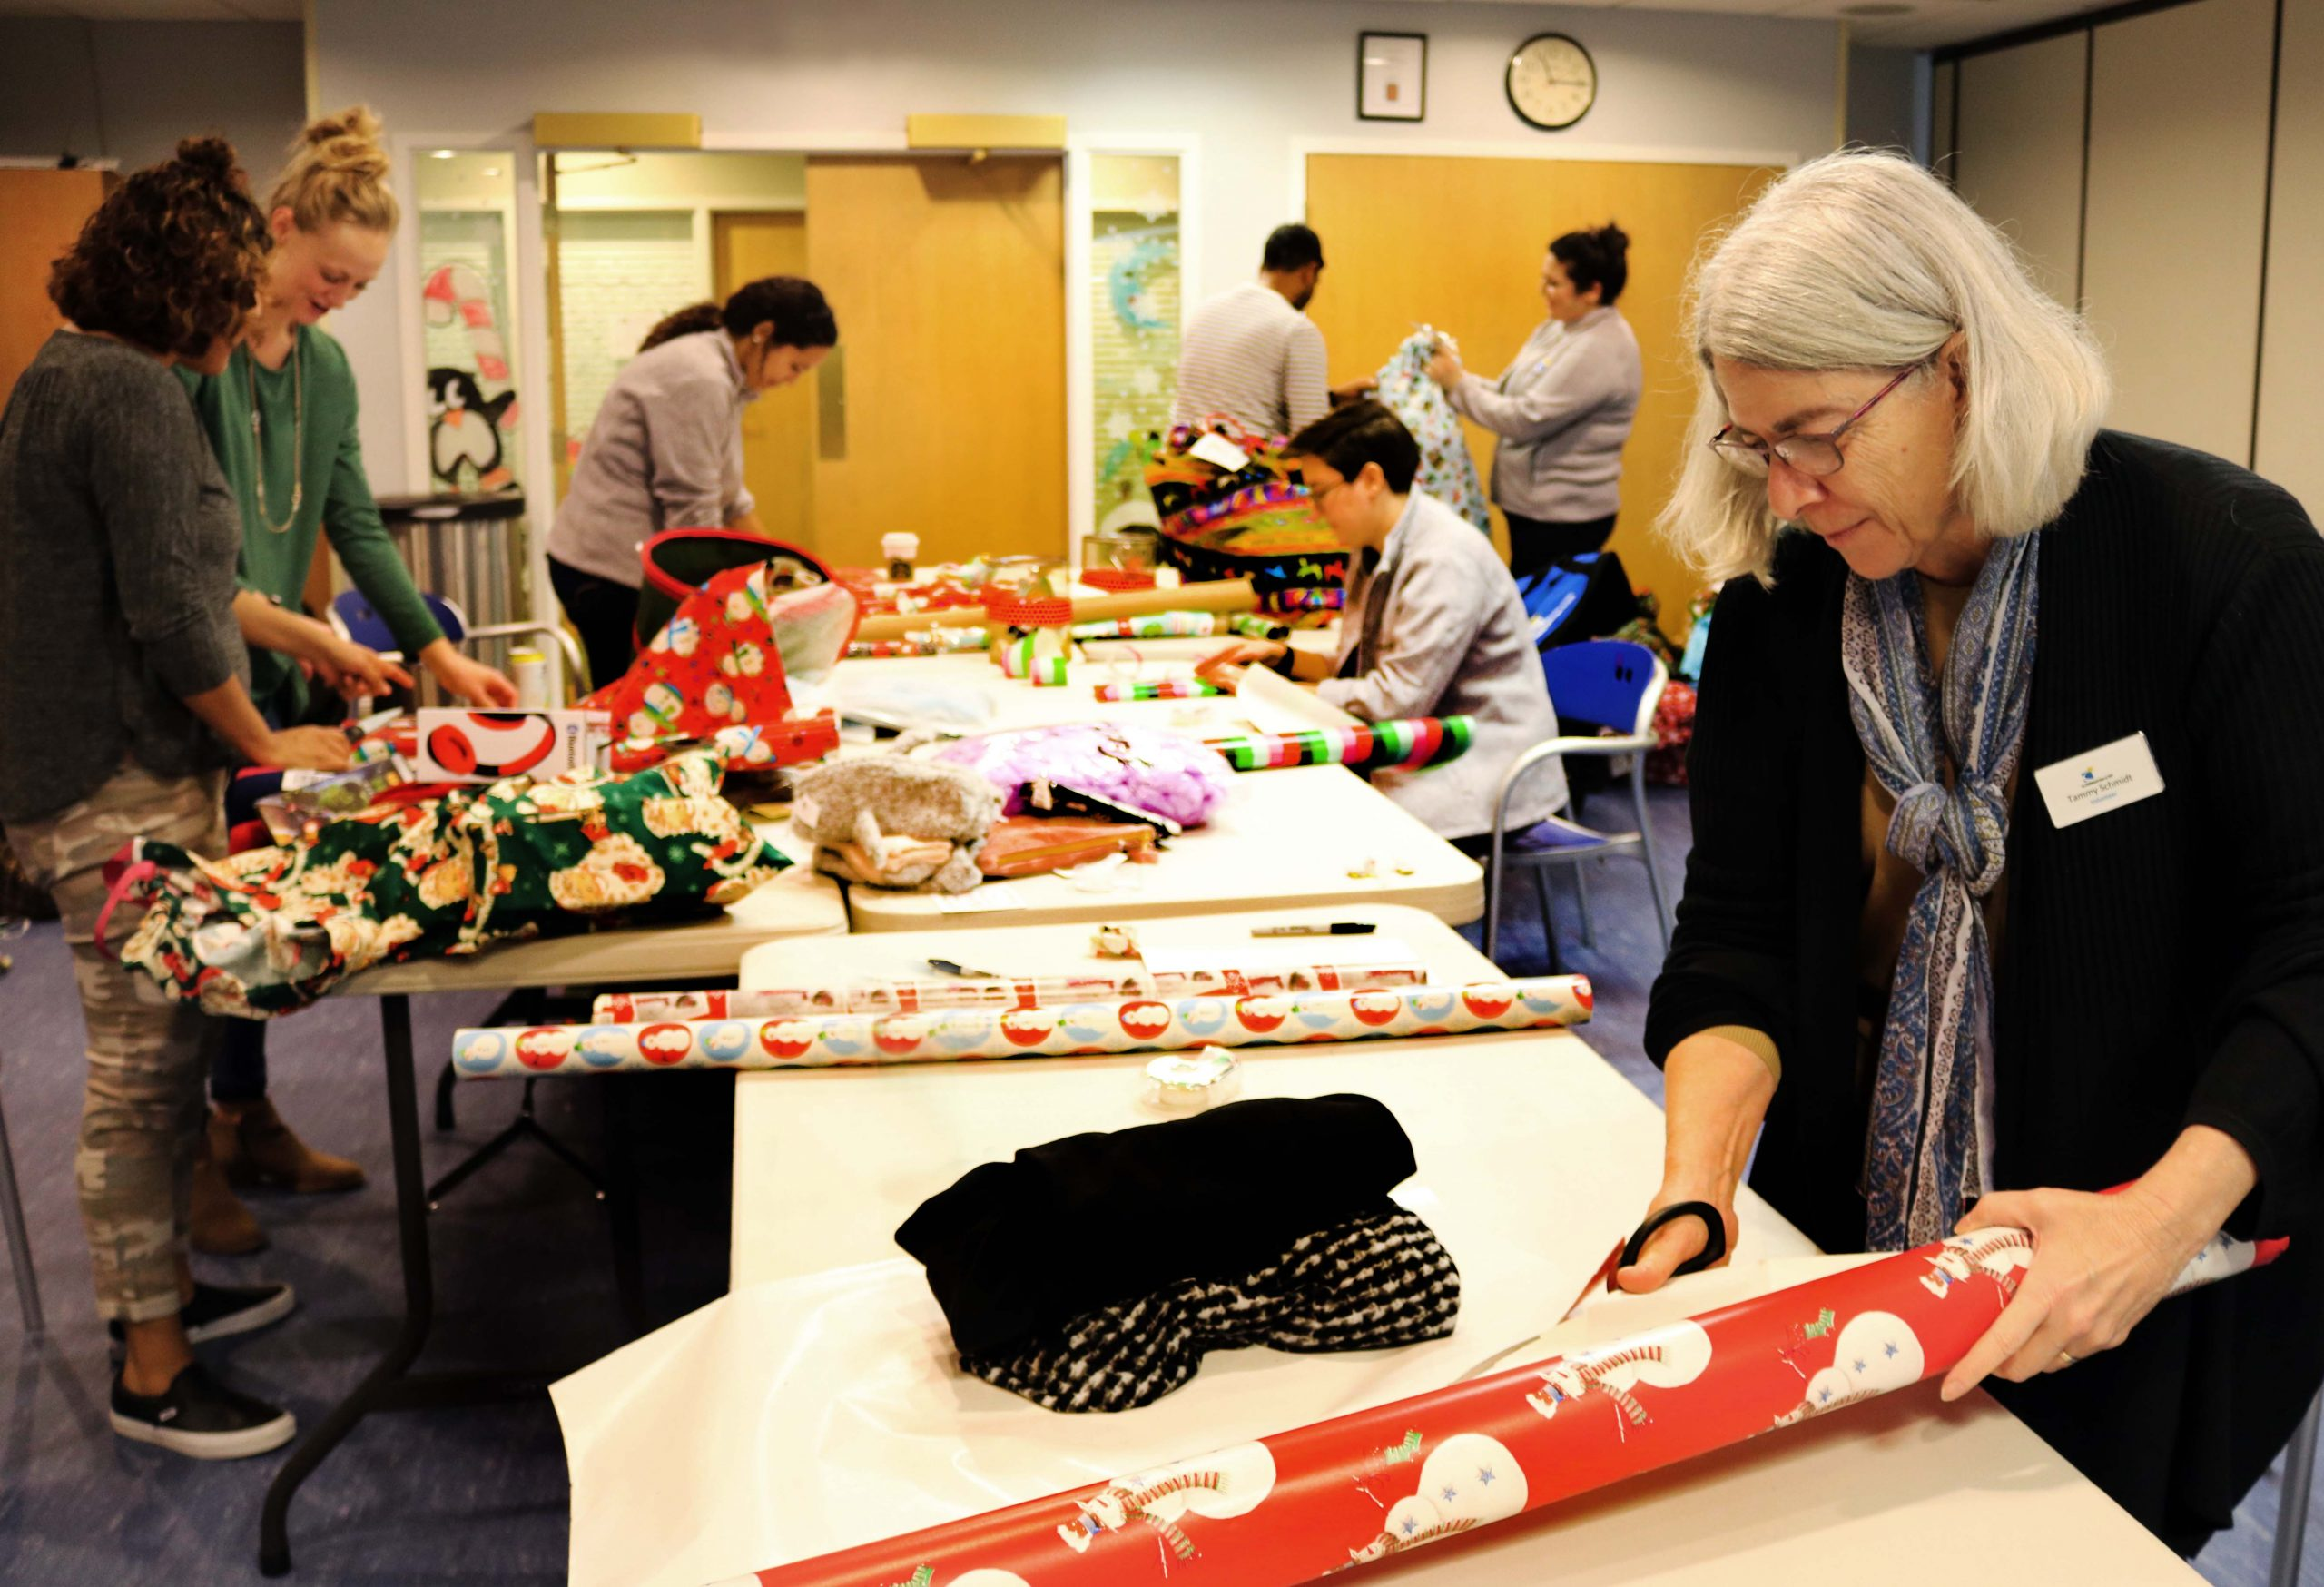 Staff and volunteers gift wrapping